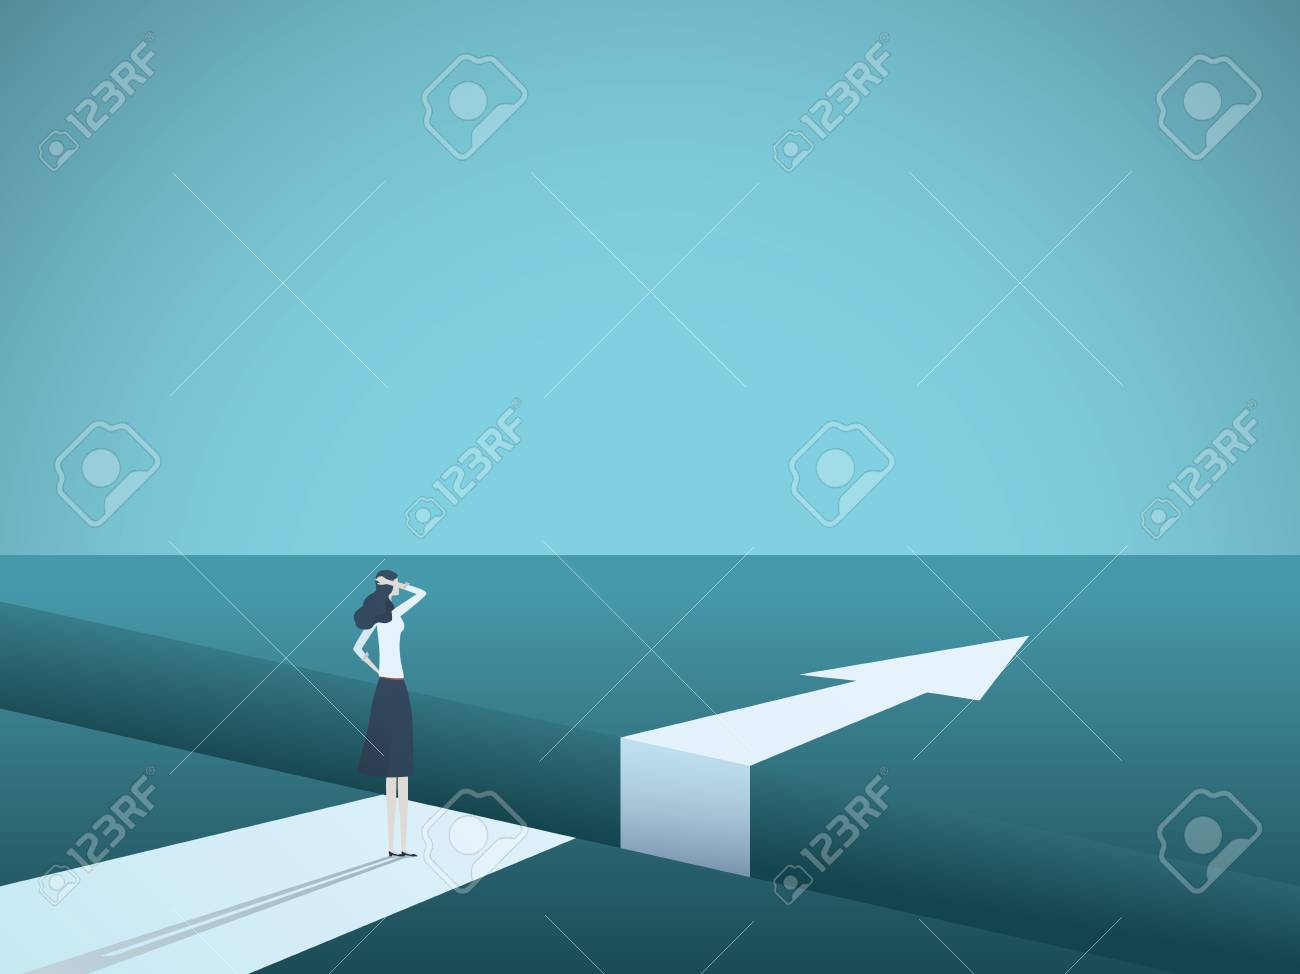 Business challenge and solution vector concept with businesswoman standing over big gap. - 101255979